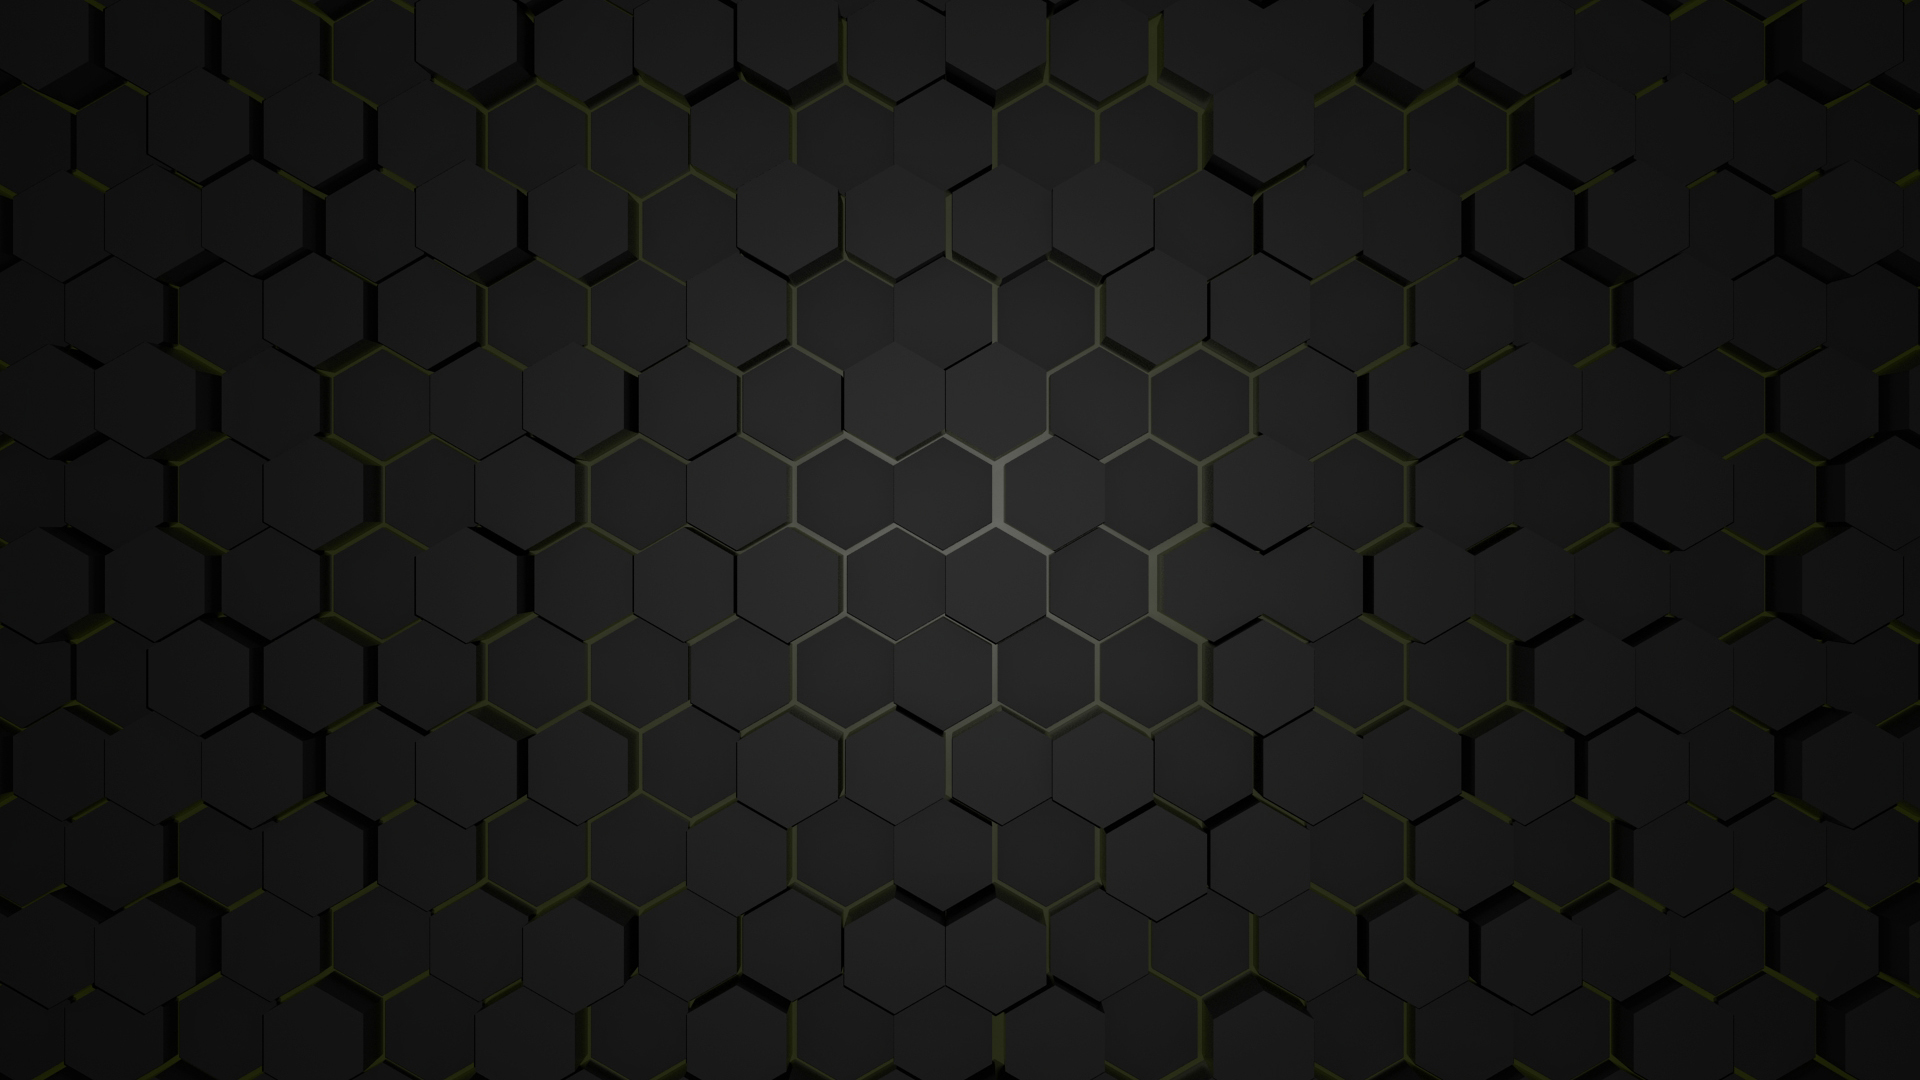 Black Abstract free background